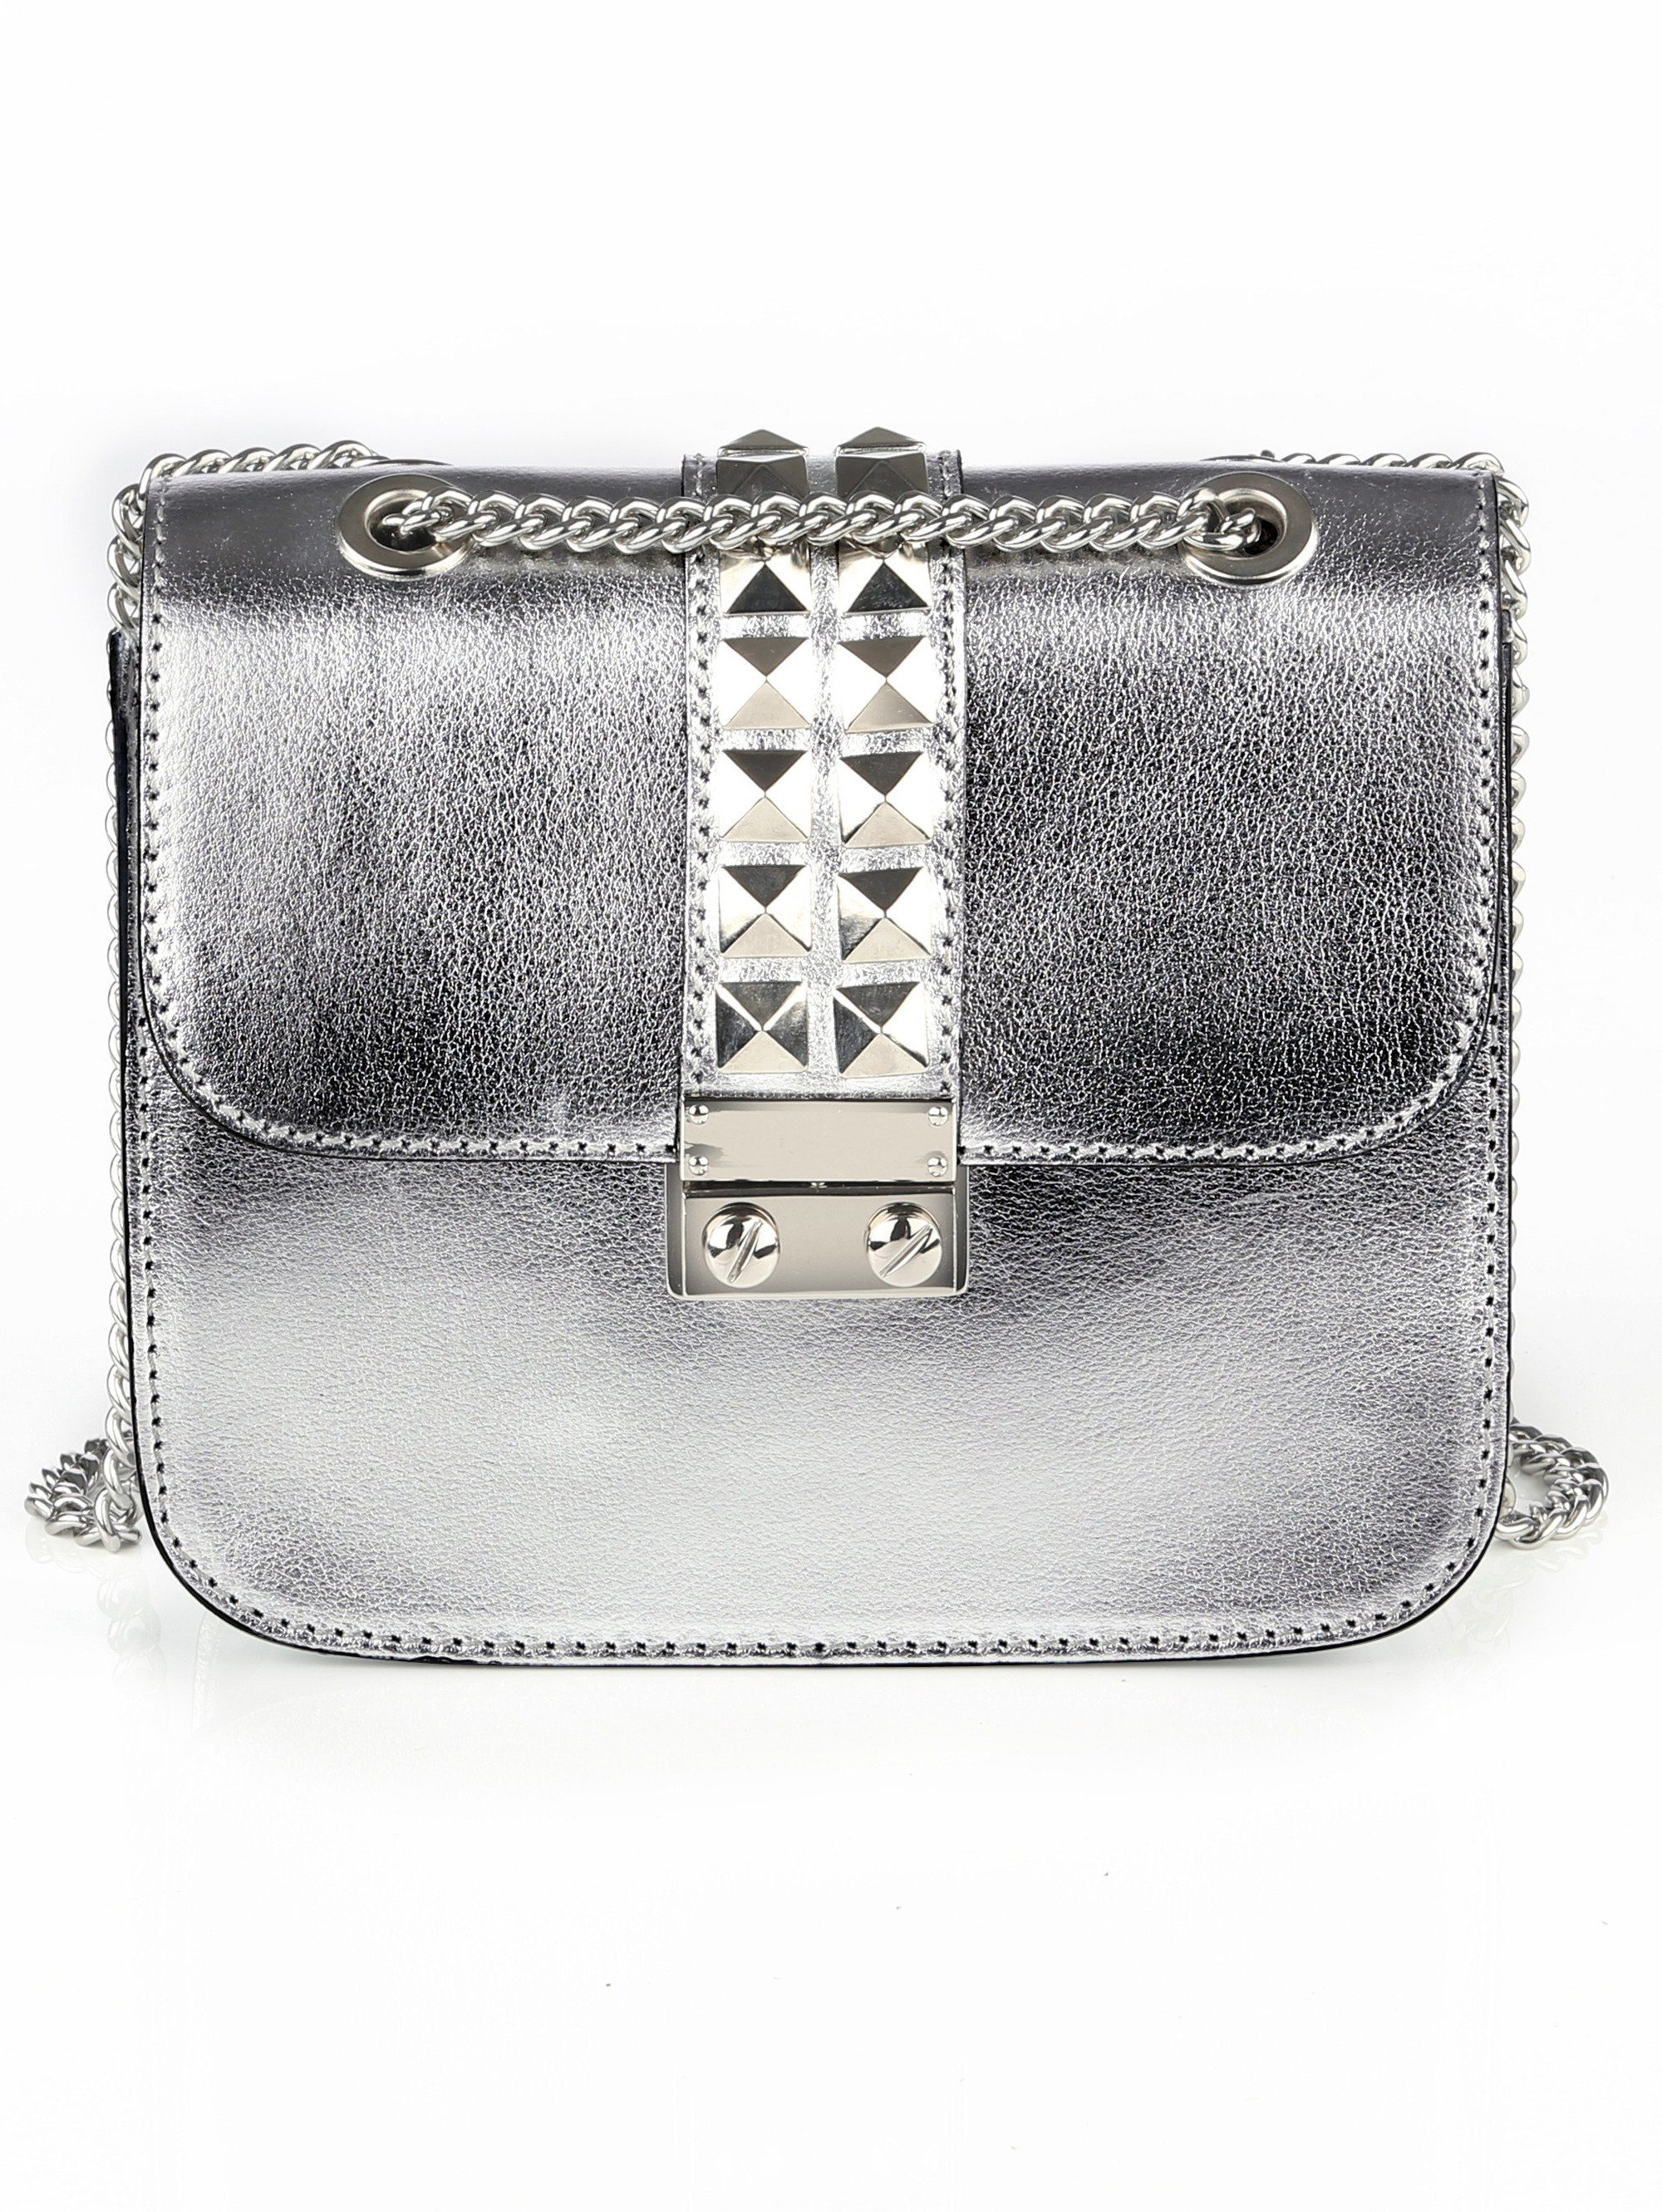 Alba Moda Tasche in Metallic-Optik